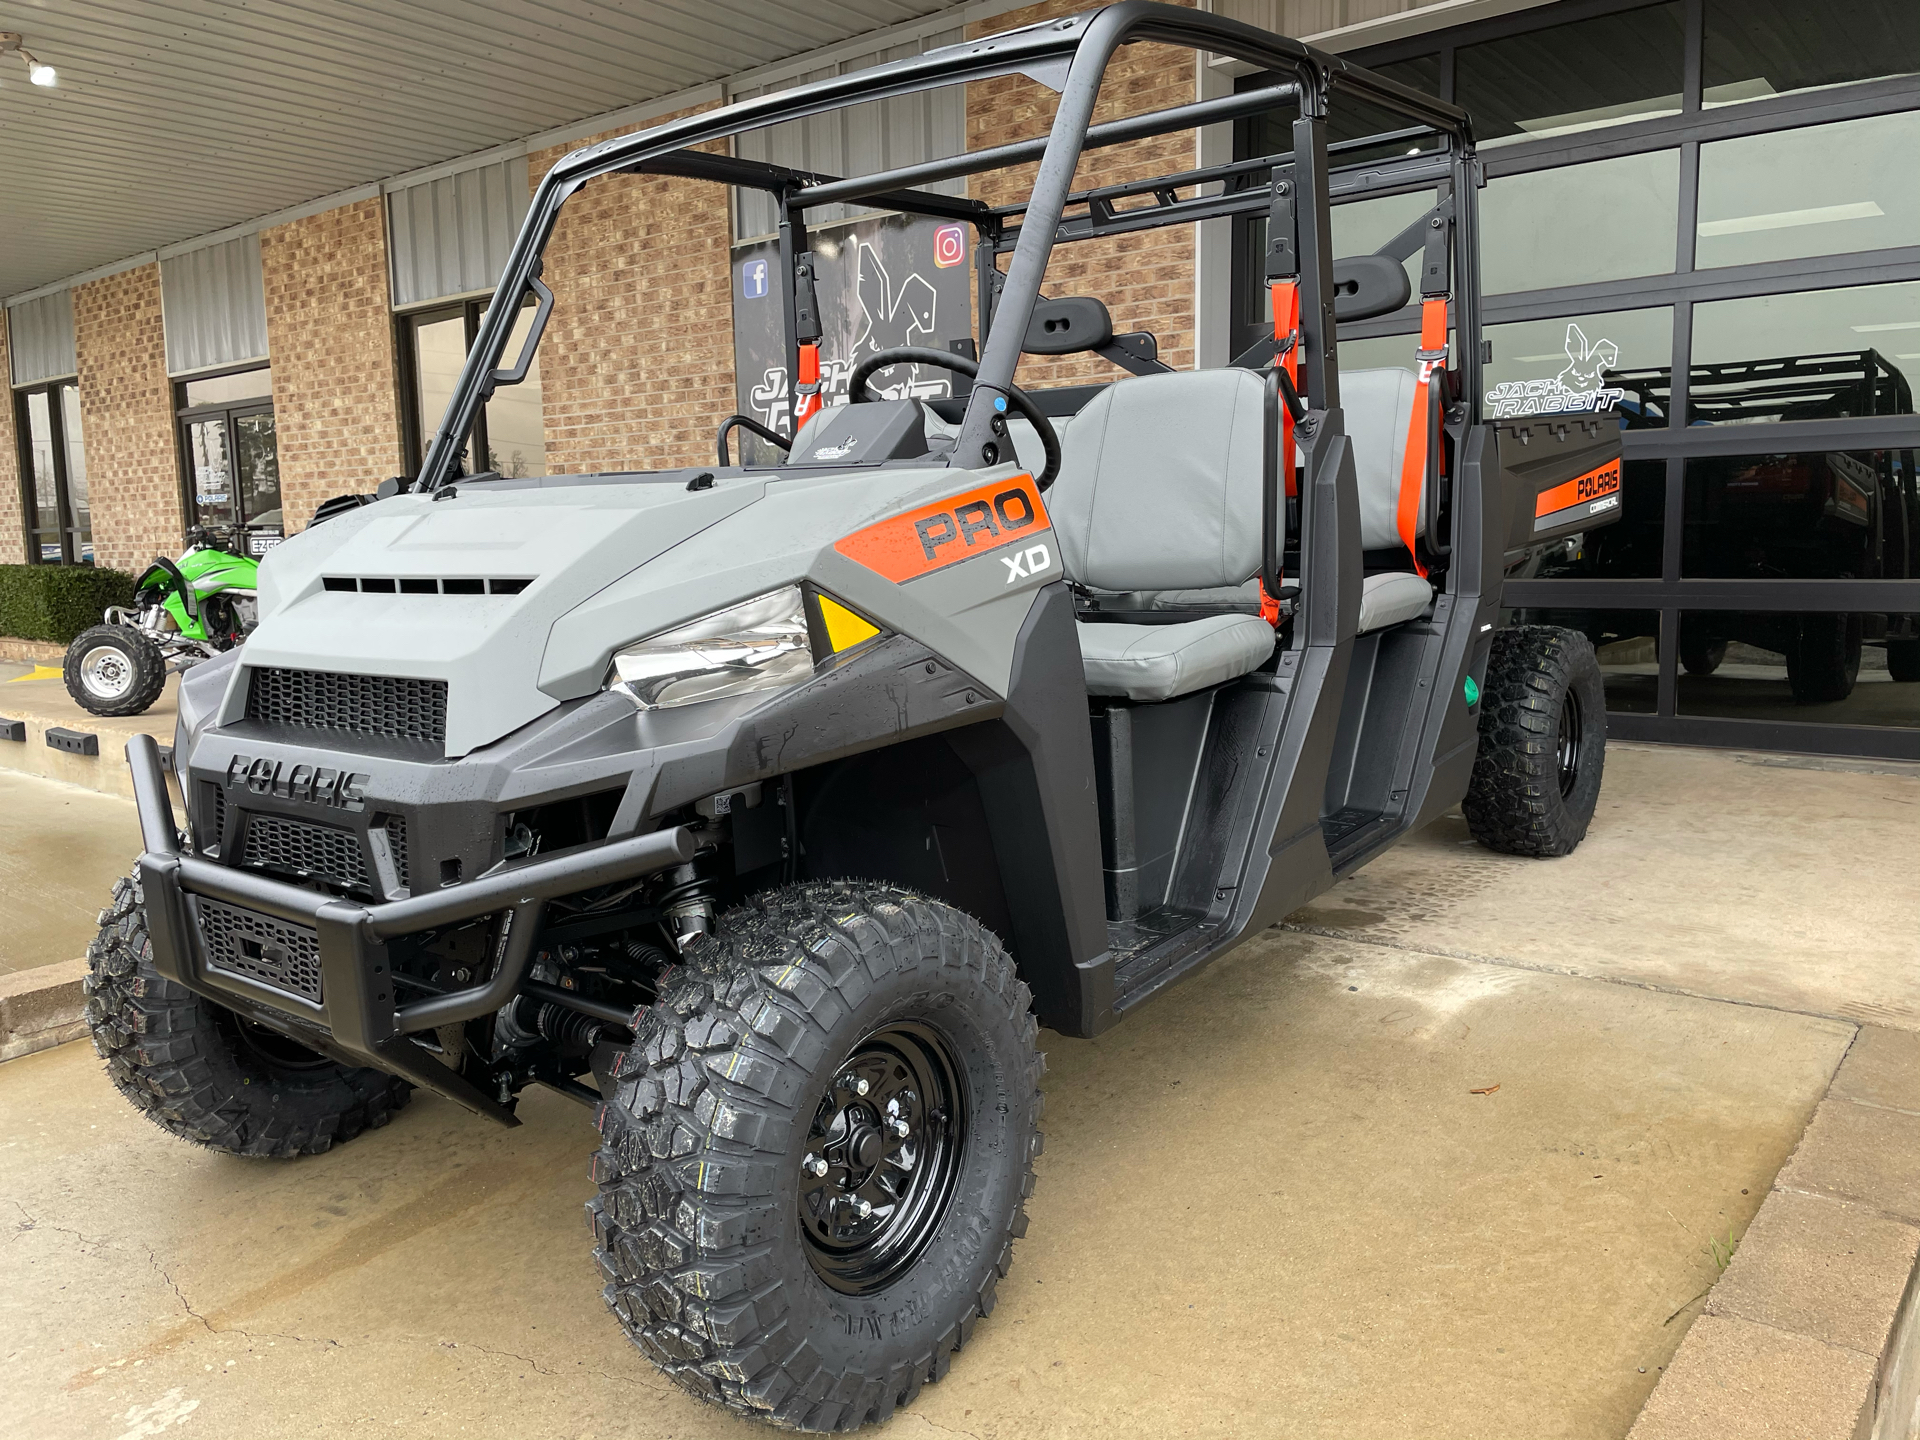 2020 Pro XD PRO XD 4000D AWD in Marshall, Texas - Photo 1